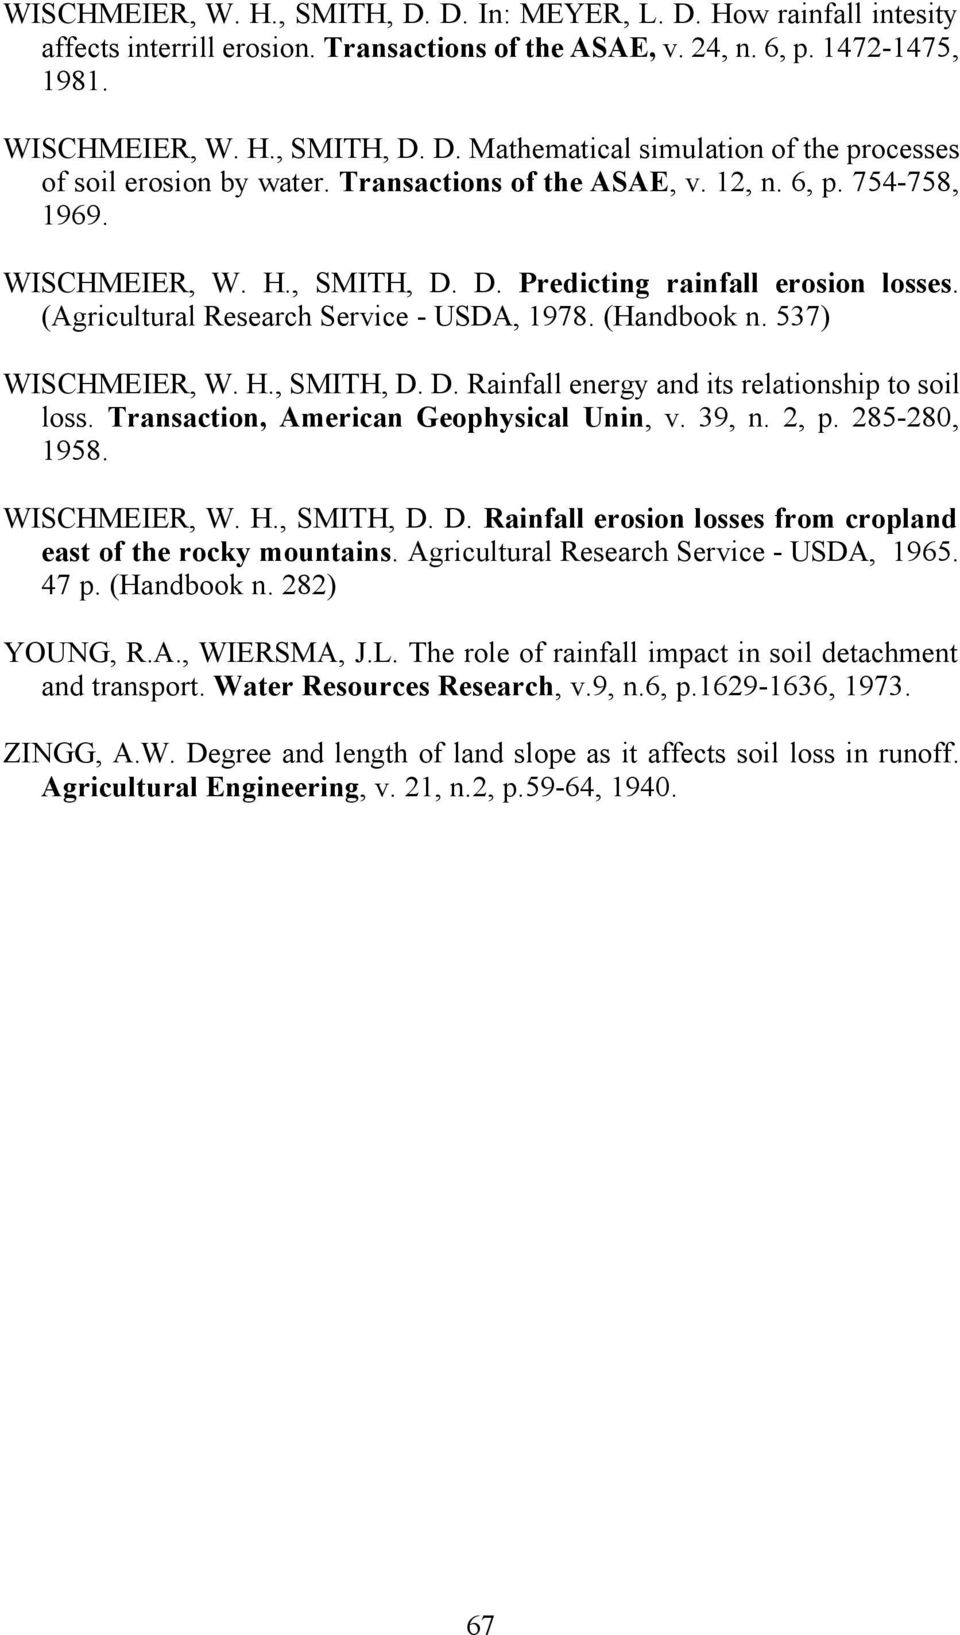 537) WISCHMEIER, W. H., SMITH, D. D. Rainfall energy and its relationship to soil loss. Transaction, American Geophysical Unin, v. 39, n. 2, p. 285-280, 1958. WISCHMEIER, W. H., SMITH, D. D. Rainfall erosion losses from cropland east of the rocky mountains.